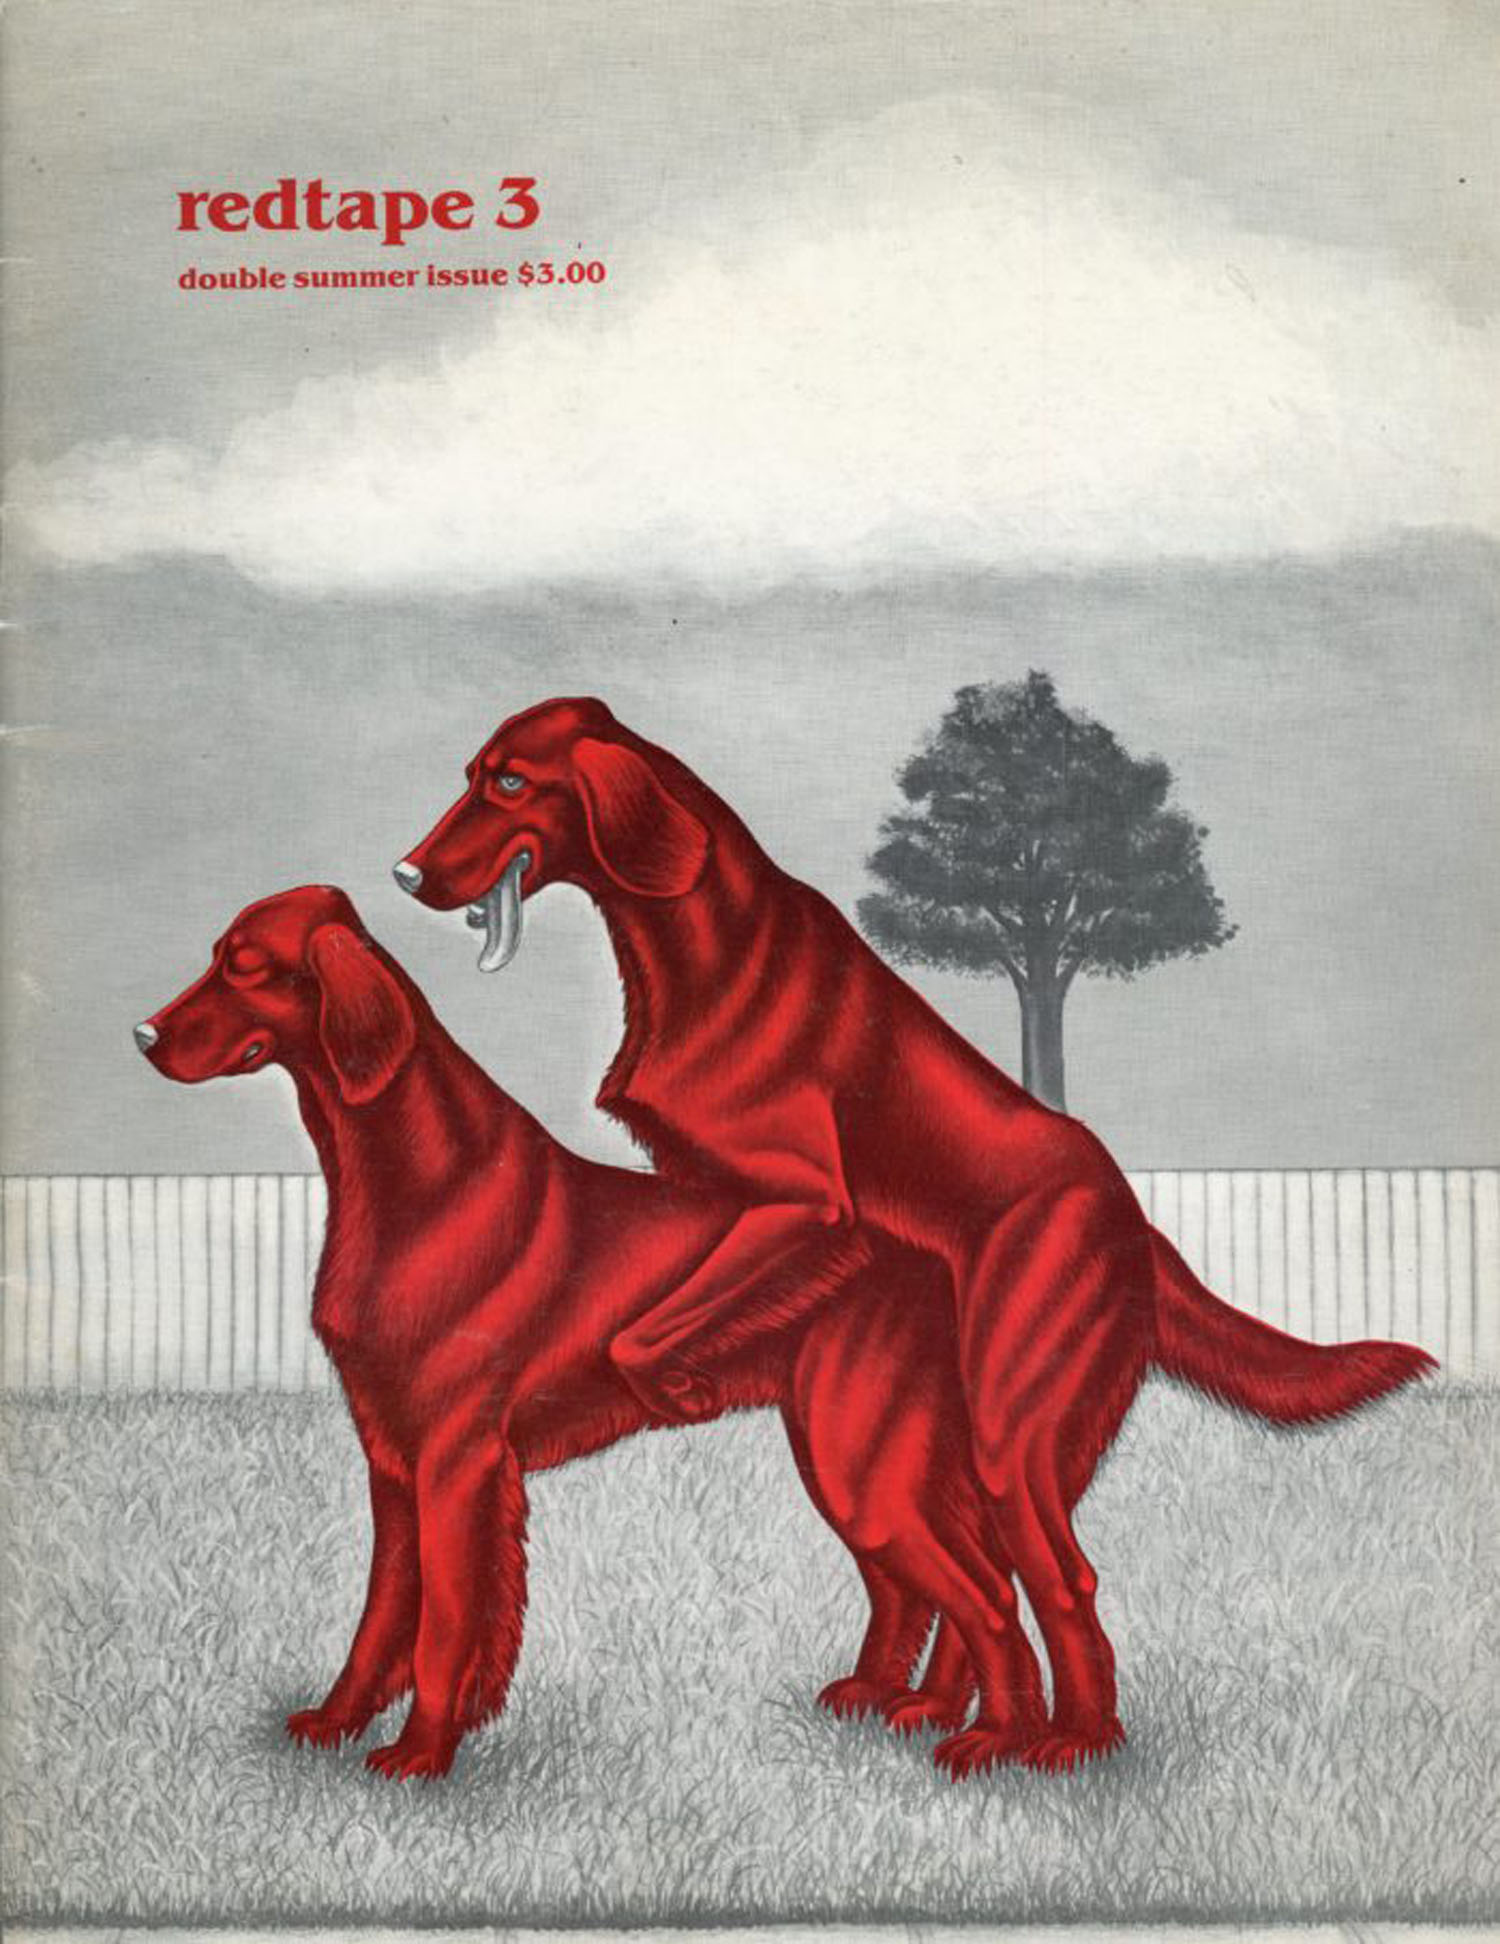 Redtape #3 1983 – cover by Michael Rheingold with Greer Langton & others